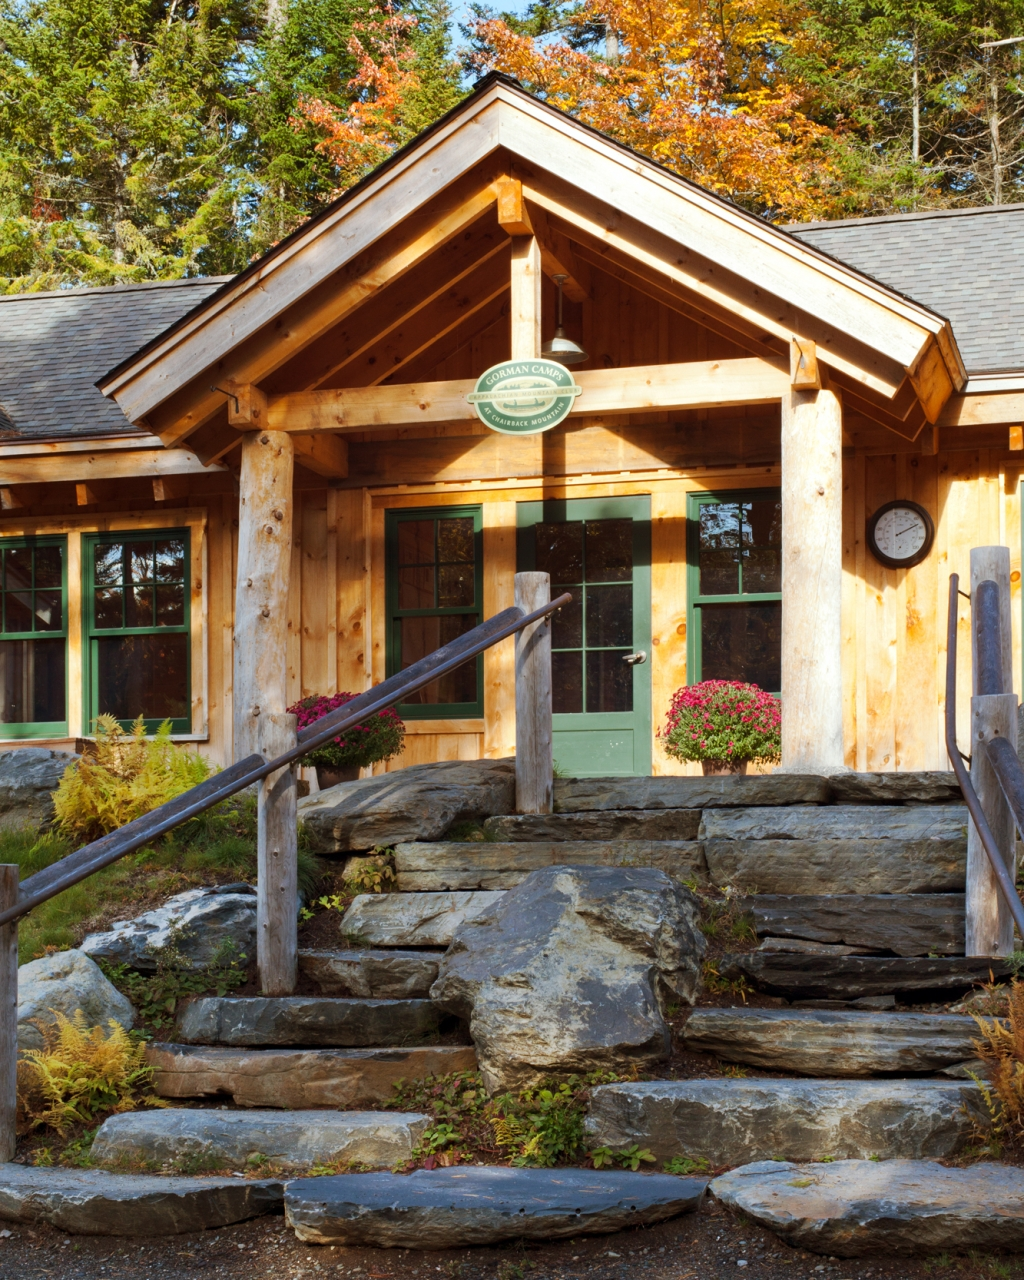 Appalachian Mountain Club, Chairback Lodge And Cabins